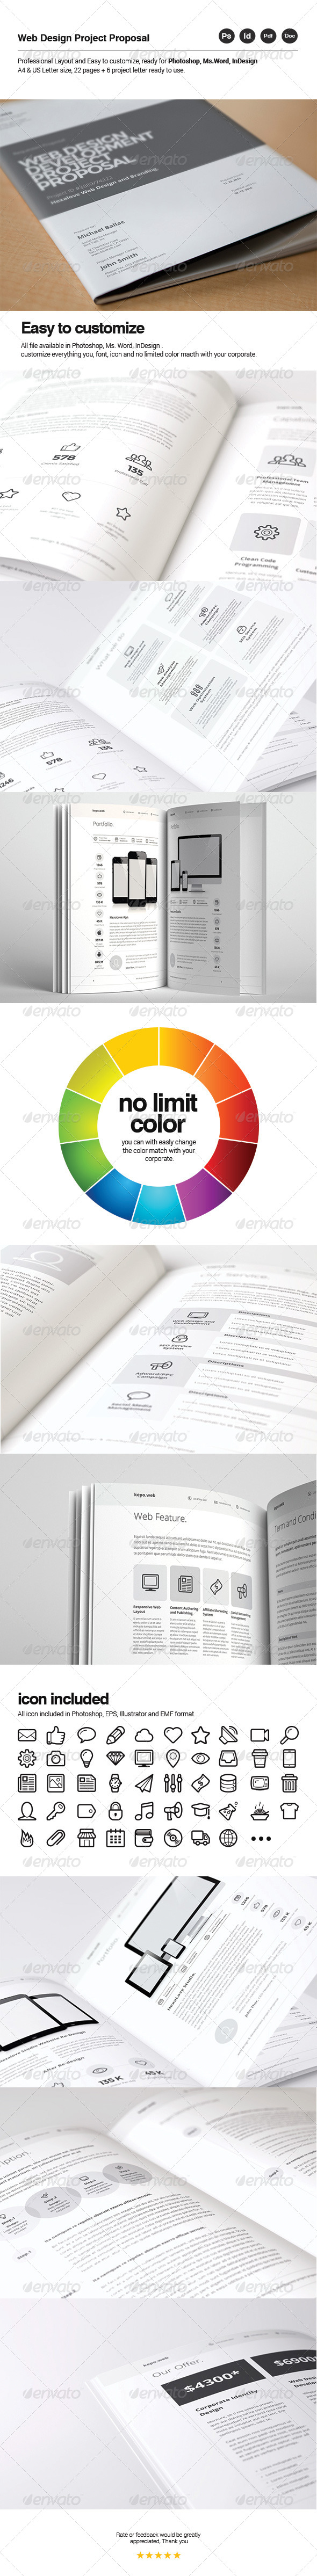 GraphicRiver Web Design Proposal 8004480